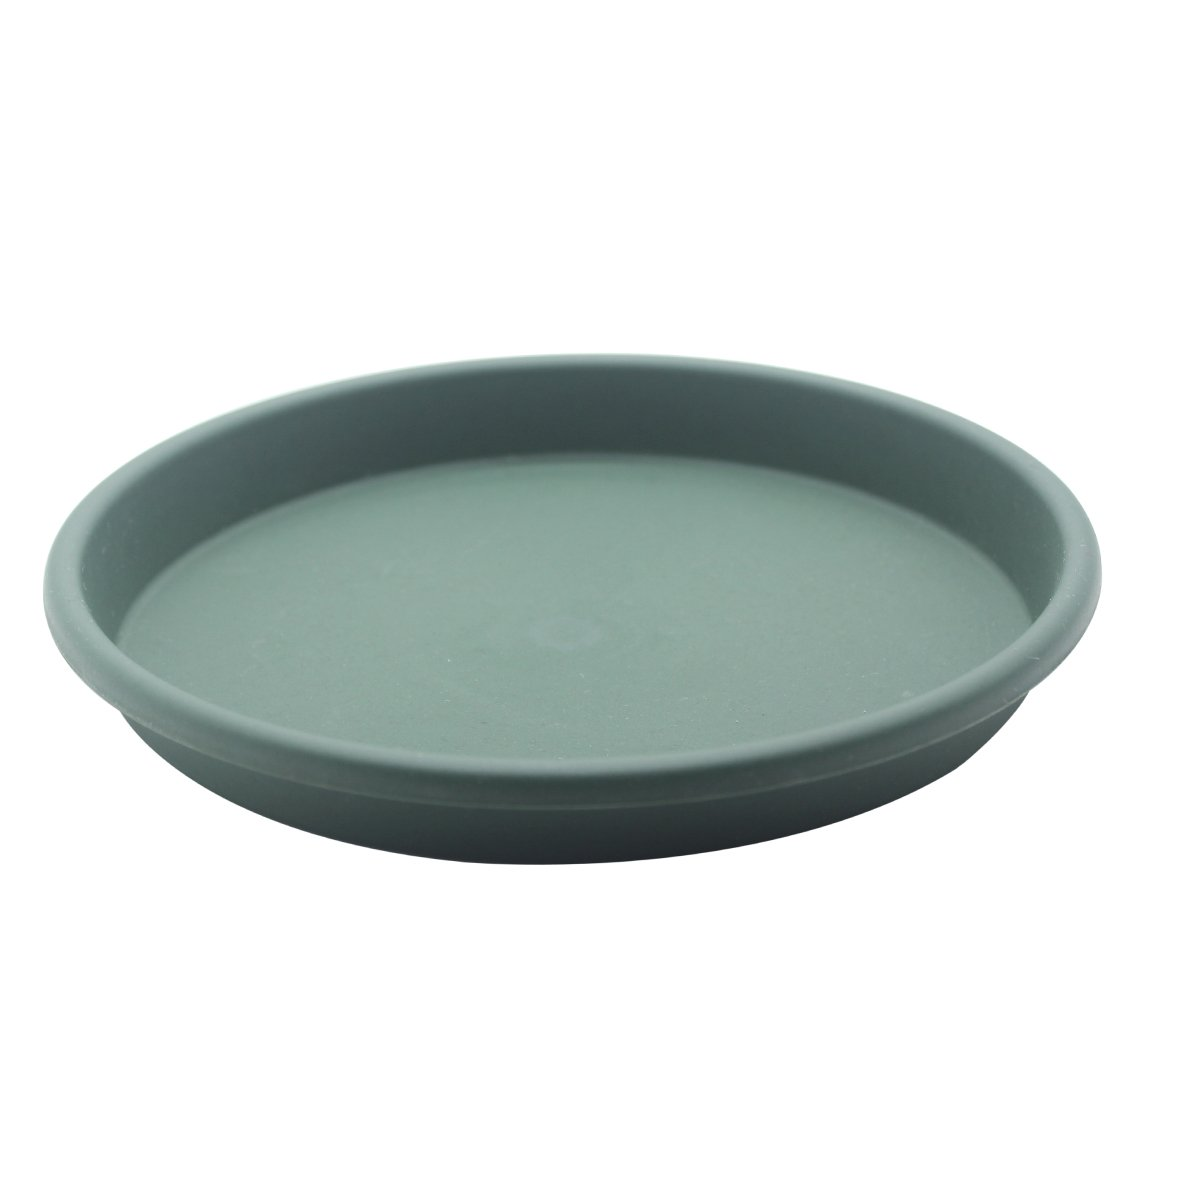 5Pcs Round Green Plastic Plants Pot Saucer Trays,for holding Soil and Water Drips Excellent For Indoor & Outdoor Plants (9.0in)